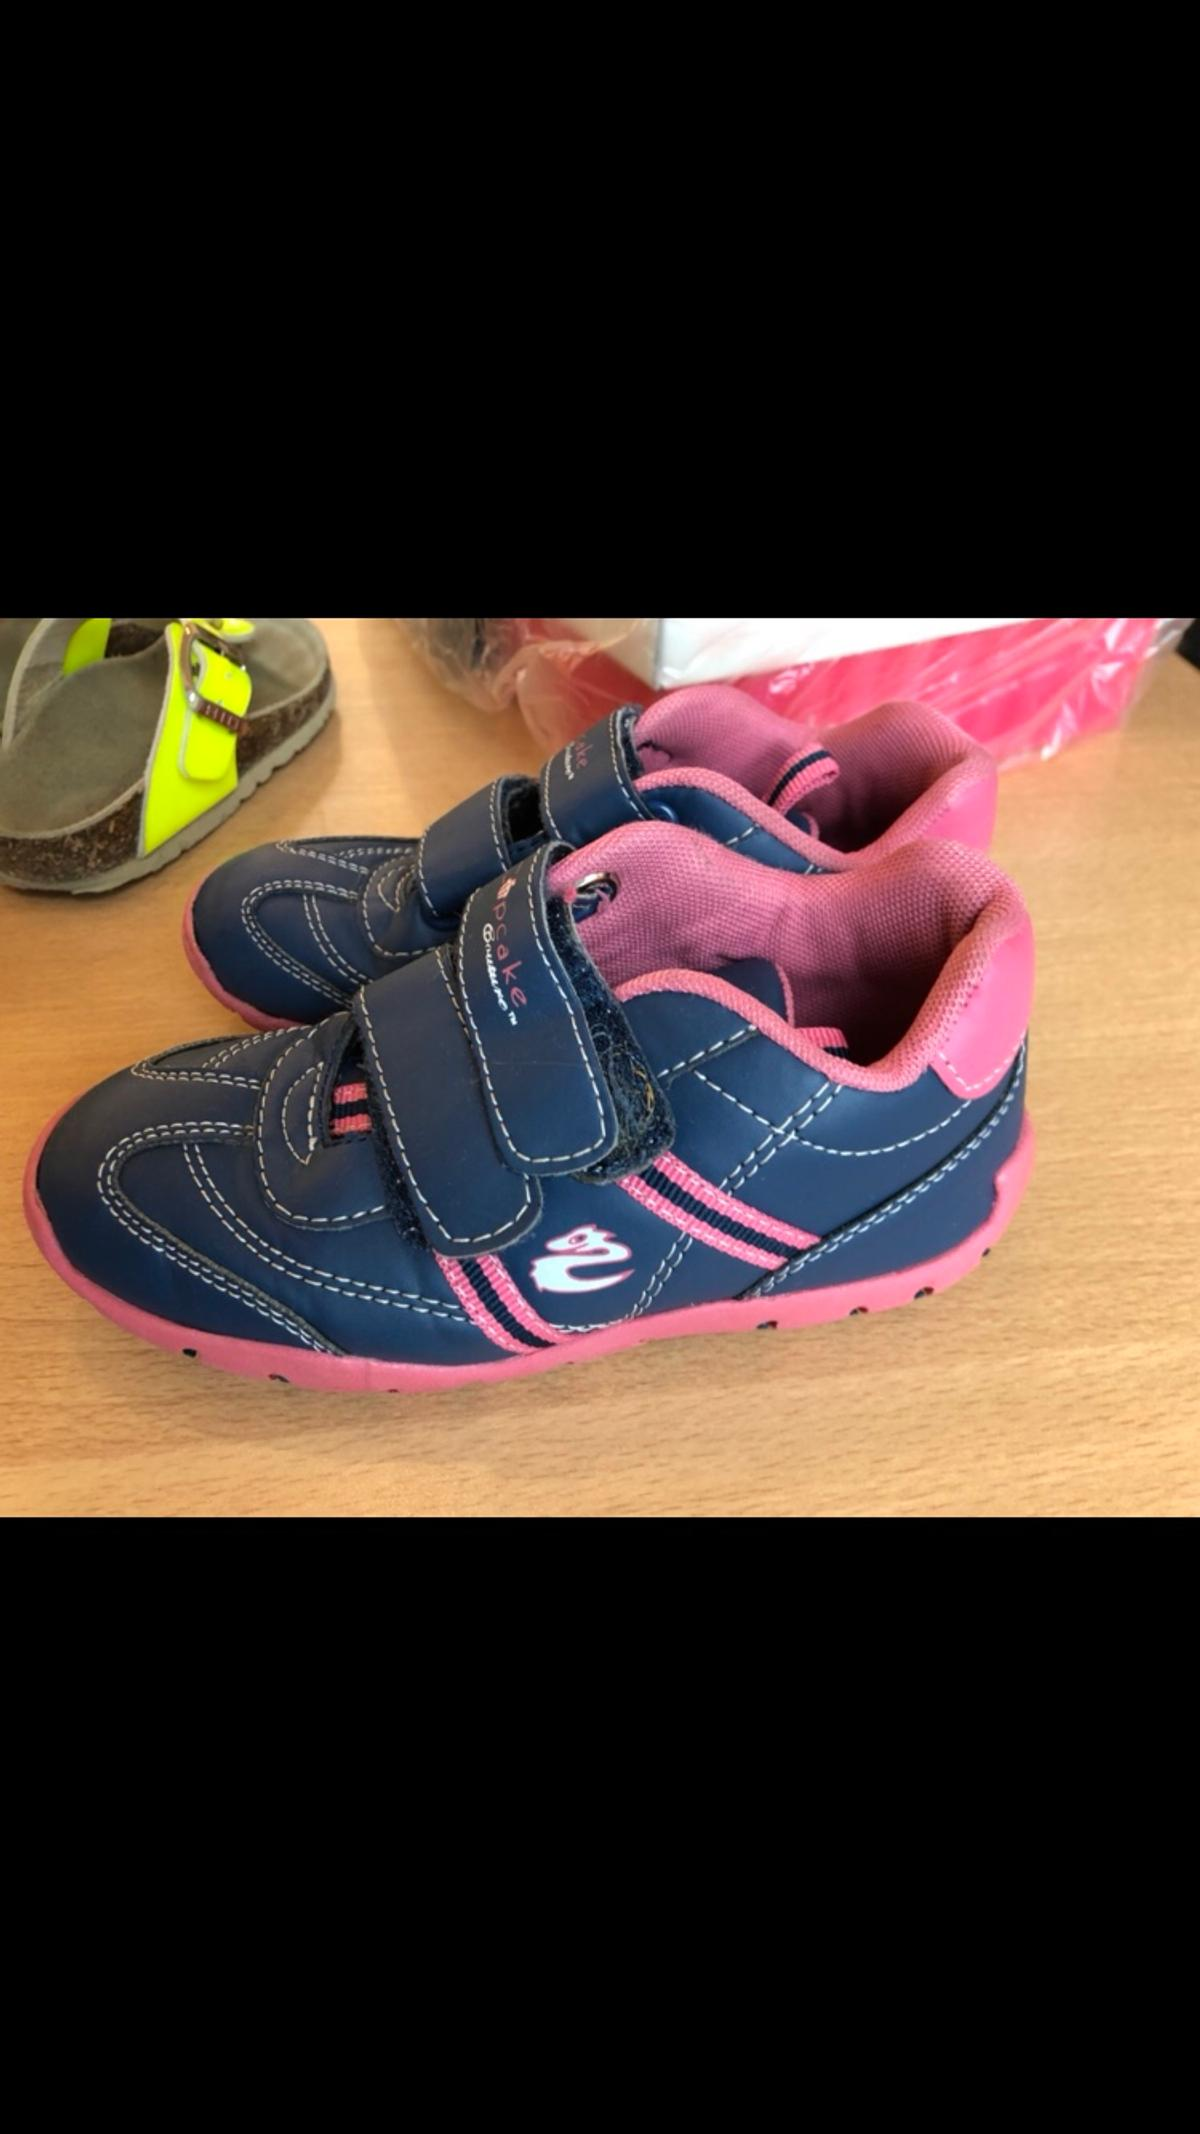 Sneakers in 41363 Jüchen for €15.00 for sale | Shpock